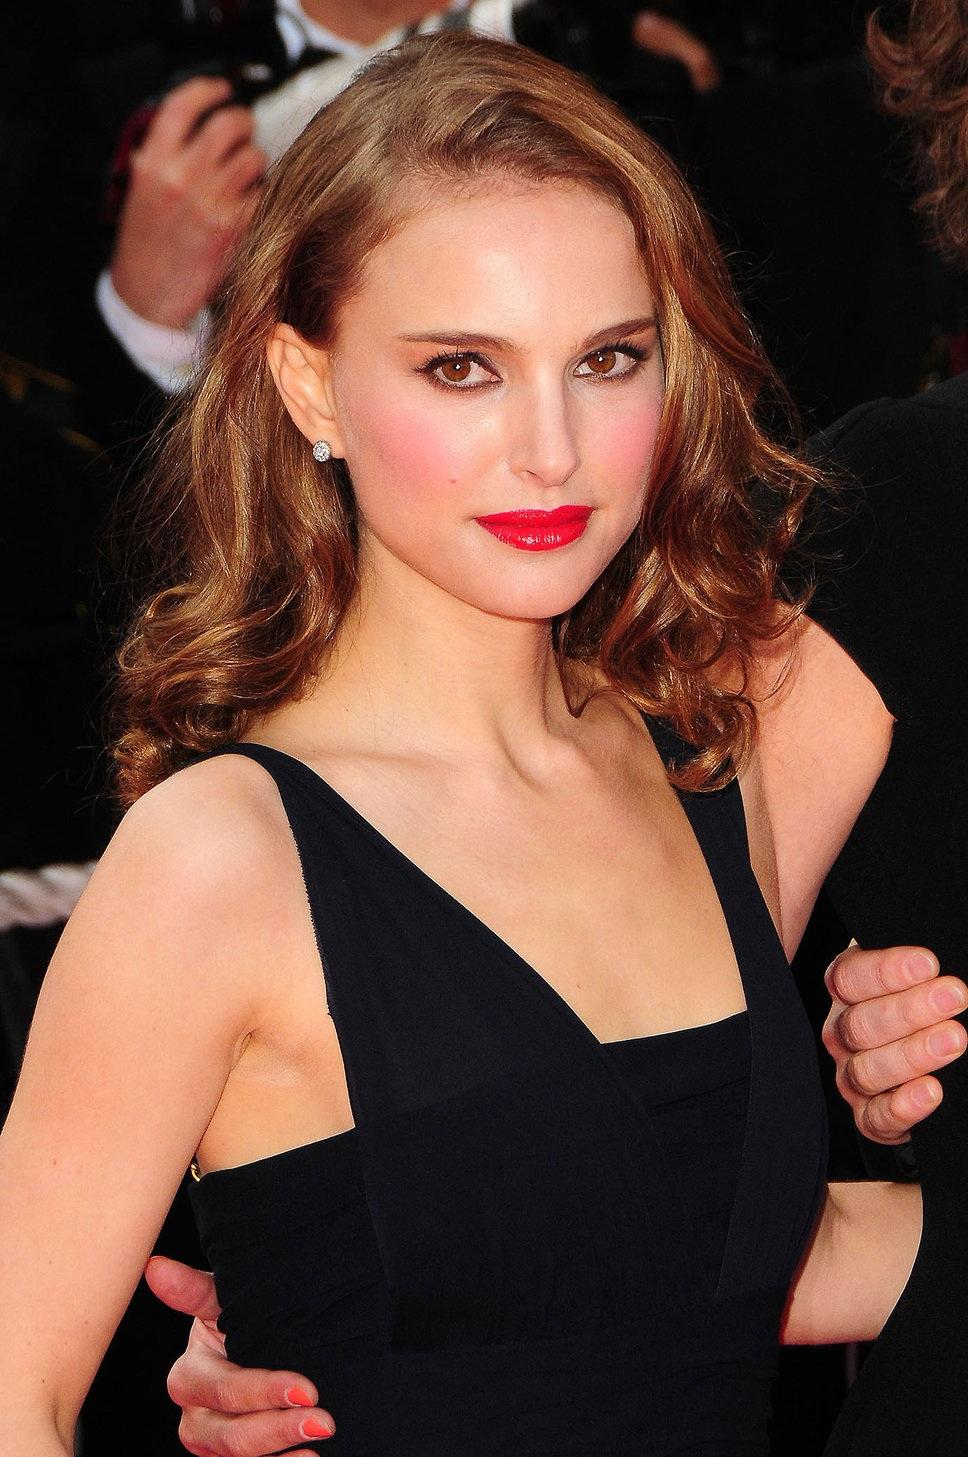 Natalie Portman Red Lips